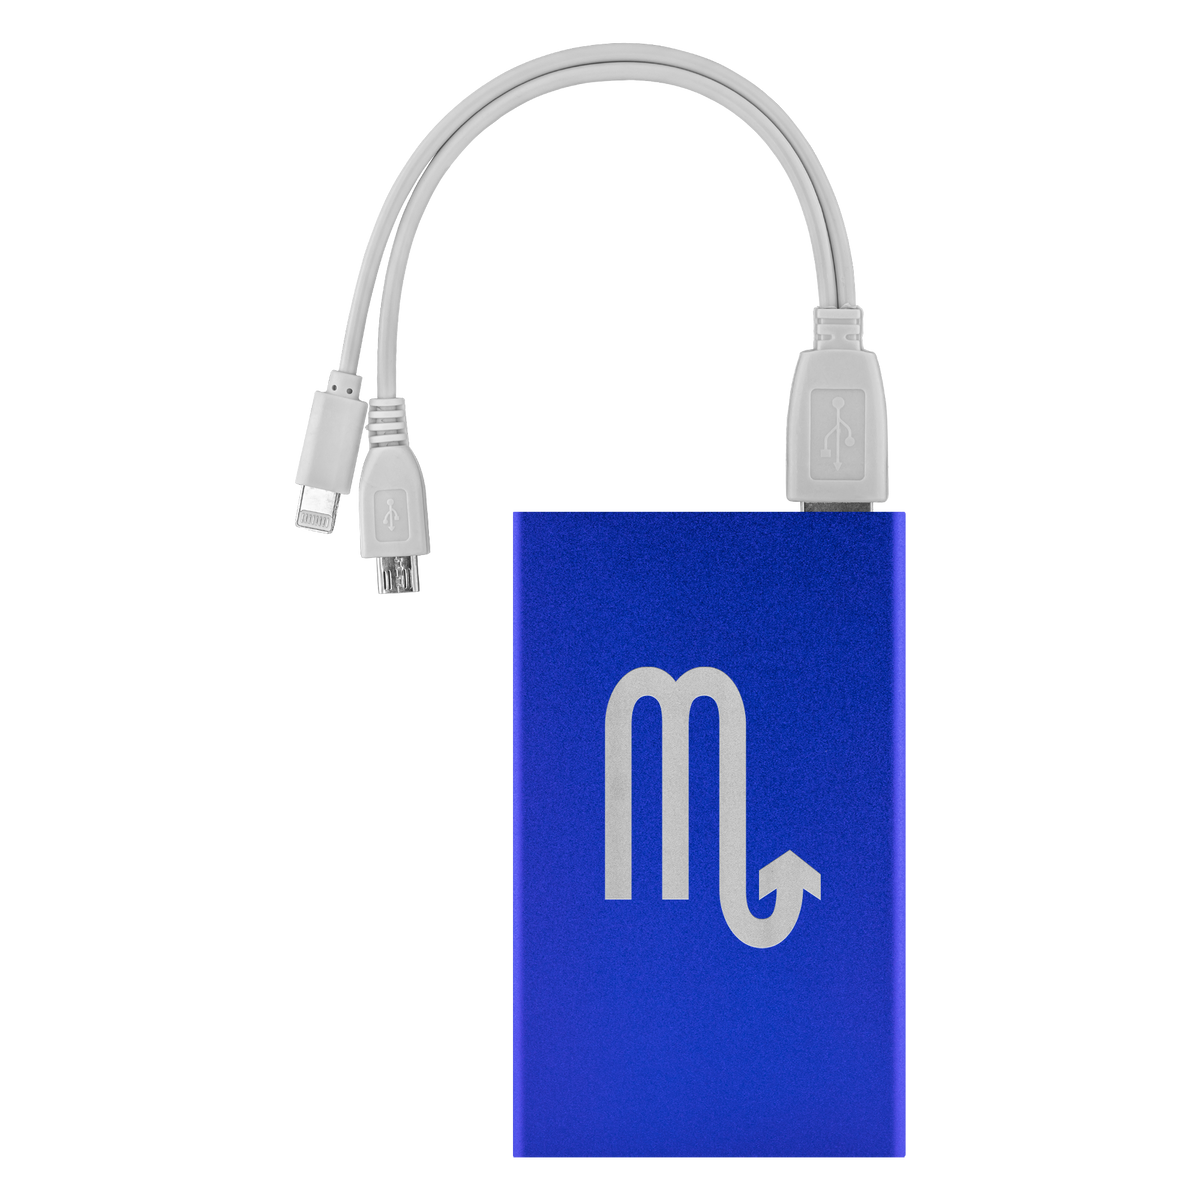 Zodiac Scorpio Power Bank